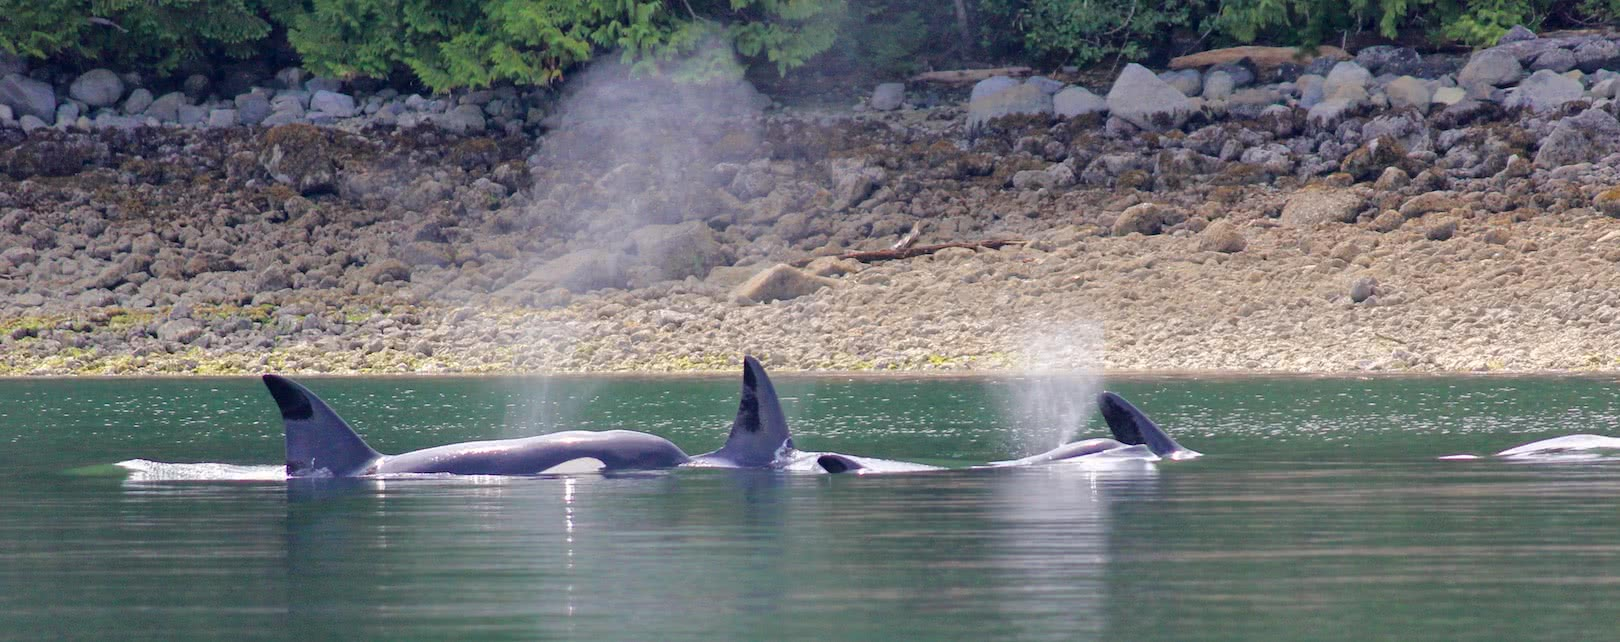 A pod of orcas spotted by guests on a guided kayak package to the eco resort